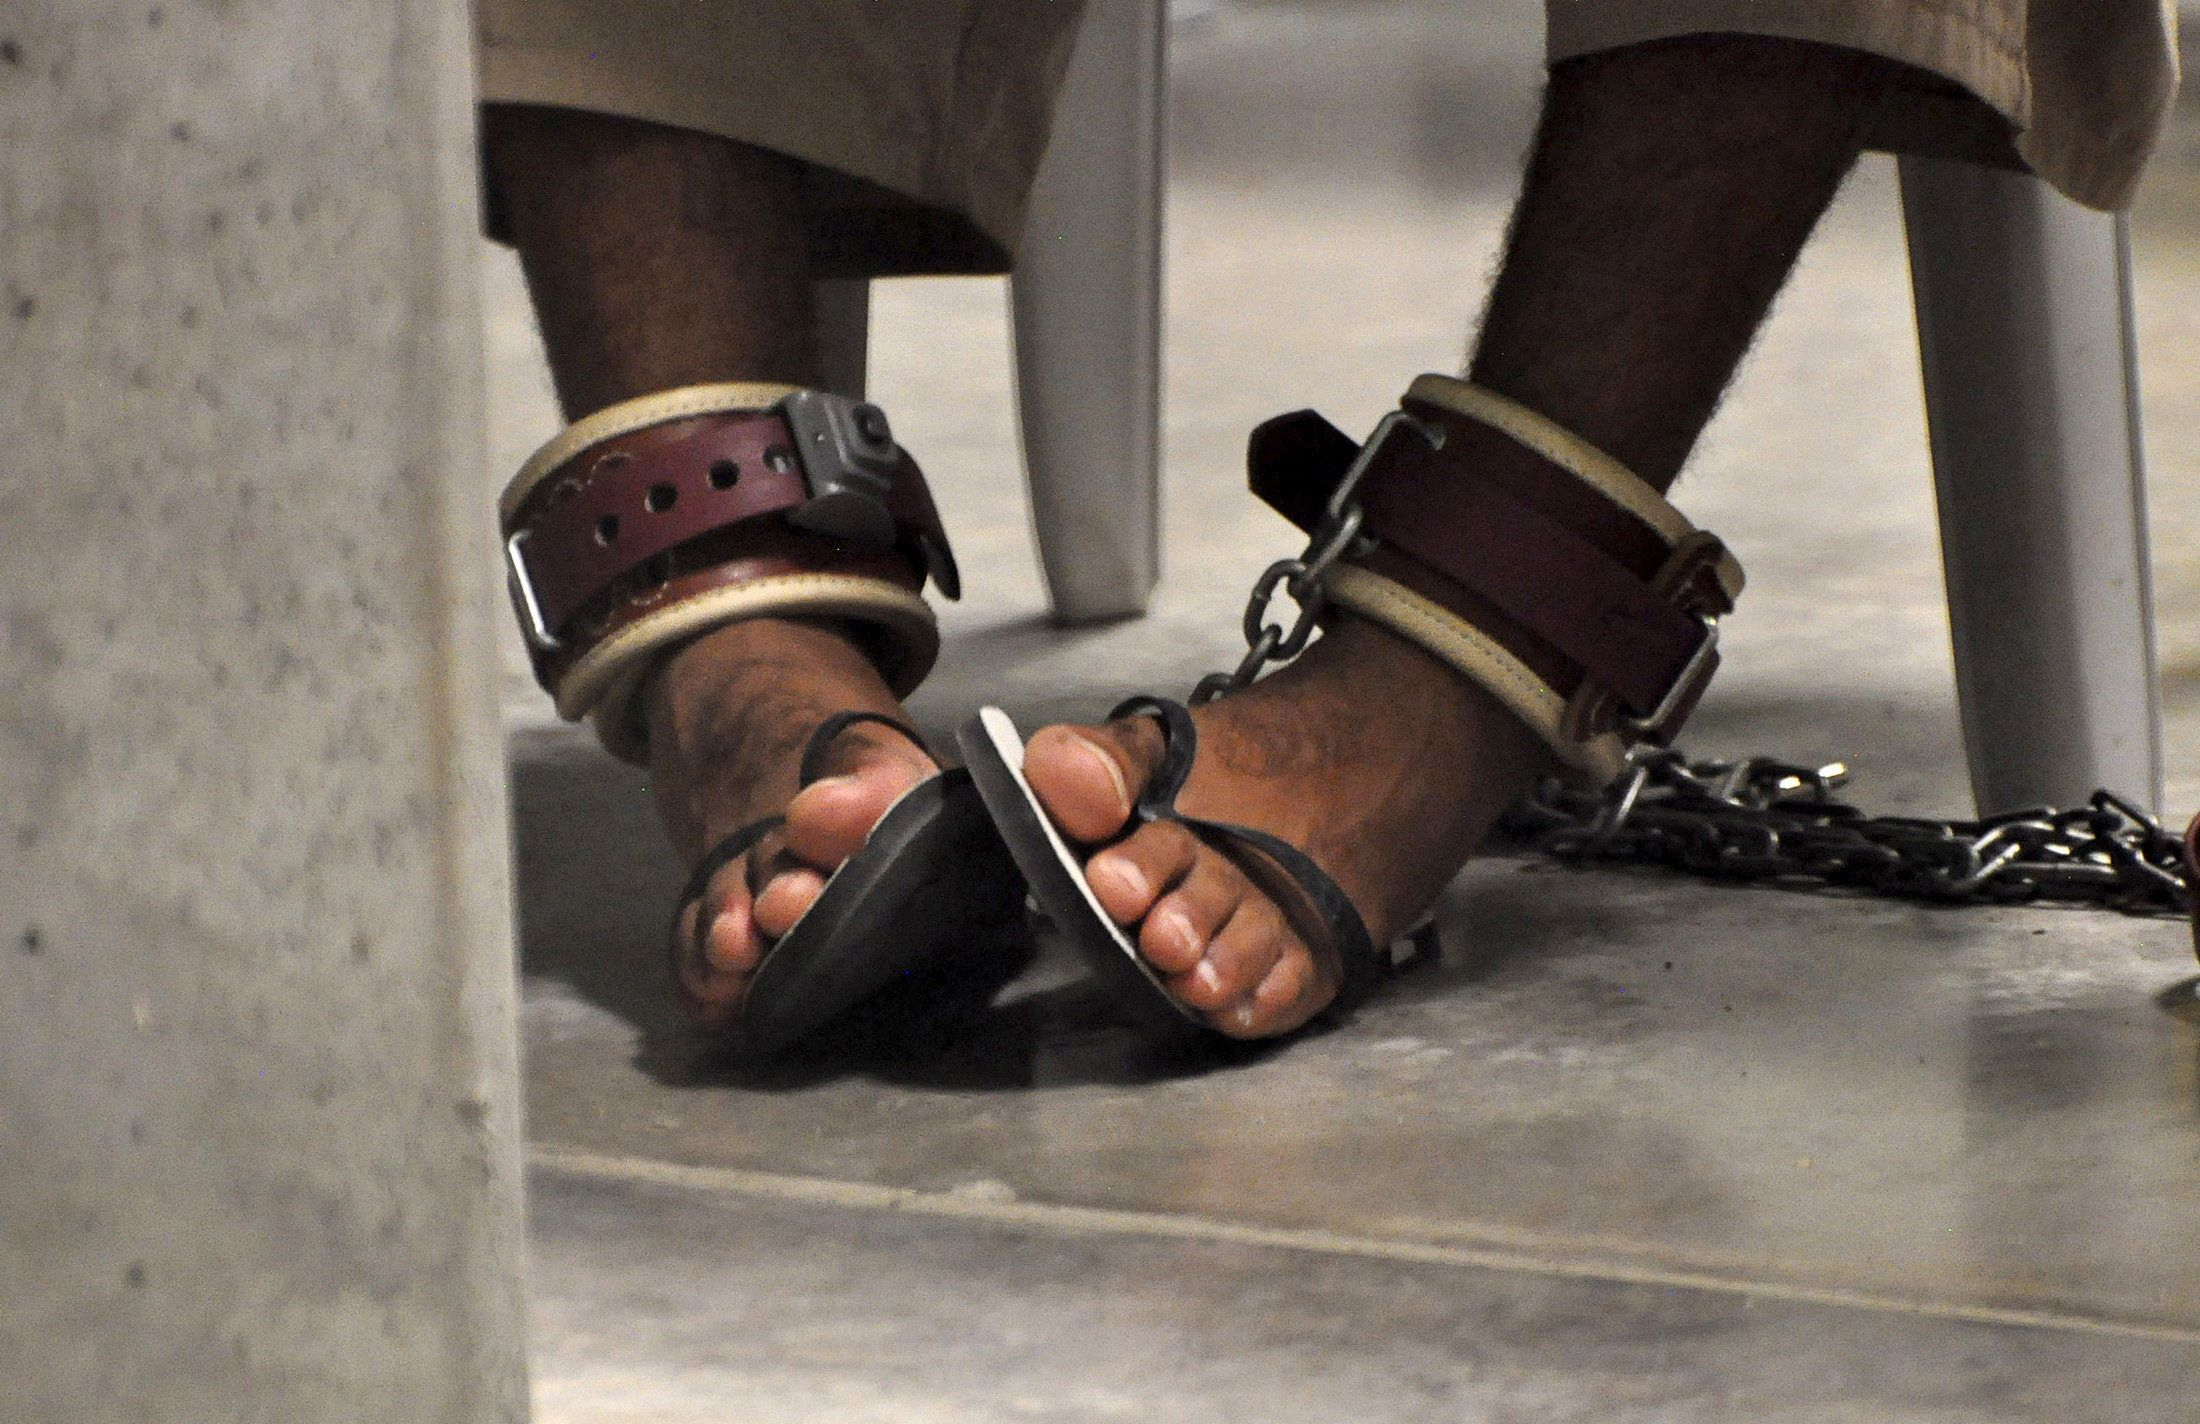 "In this photo, reviewed by a U.S. Department of Defense official, a Guantanamo detainee's feet are shackled to the floor as he attends a ""Life Skills"" class inside the Camp 6 high-security detention facility at Guantanamo Bay U.S. Naval Base in this file pool photo taken April 27, 2010. Nearly two-thirds of Americans believe torture can be justified to extract information from suspected terrorists, according to a Reuters/Ipsos poll, a level of support similar to that seen in countries like Nigeria where militant attacks are common. To match Exclusive USA-ELECTION/TORTURE  REUTERS/Michelle Shephard/Pool      TPX IMAGES OF THE DAY"